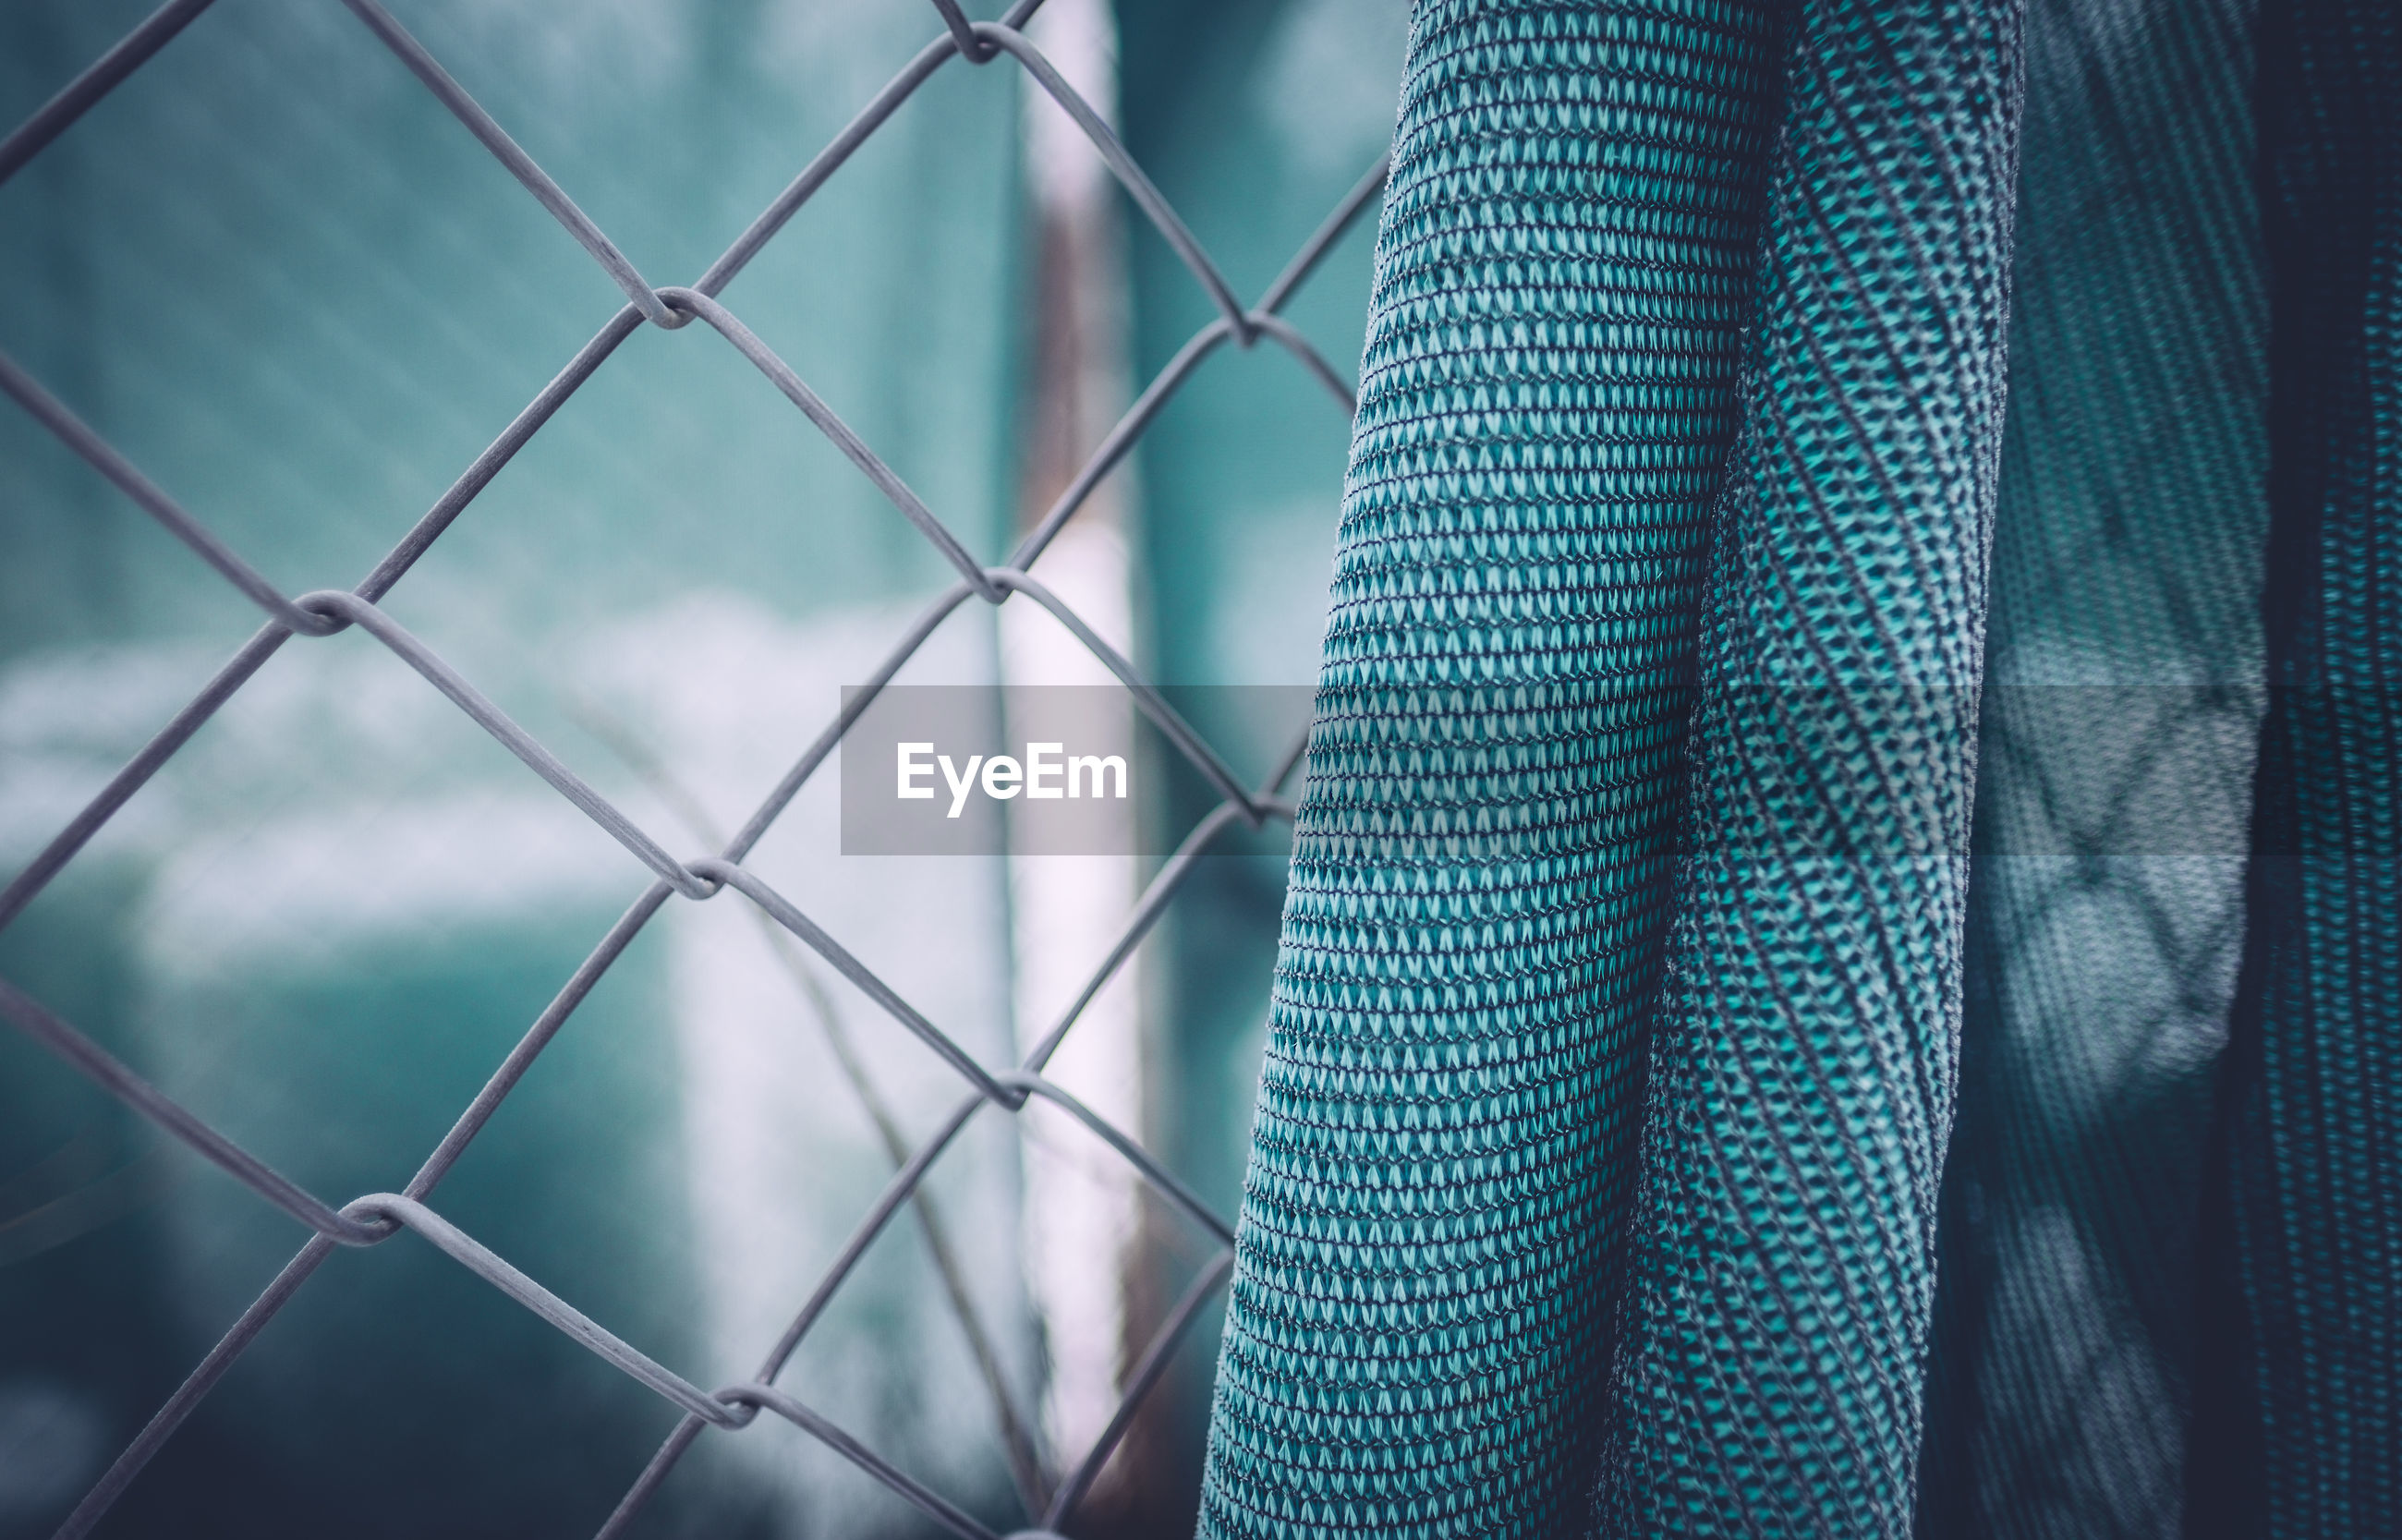 Close-up of fabric on chainlink fence